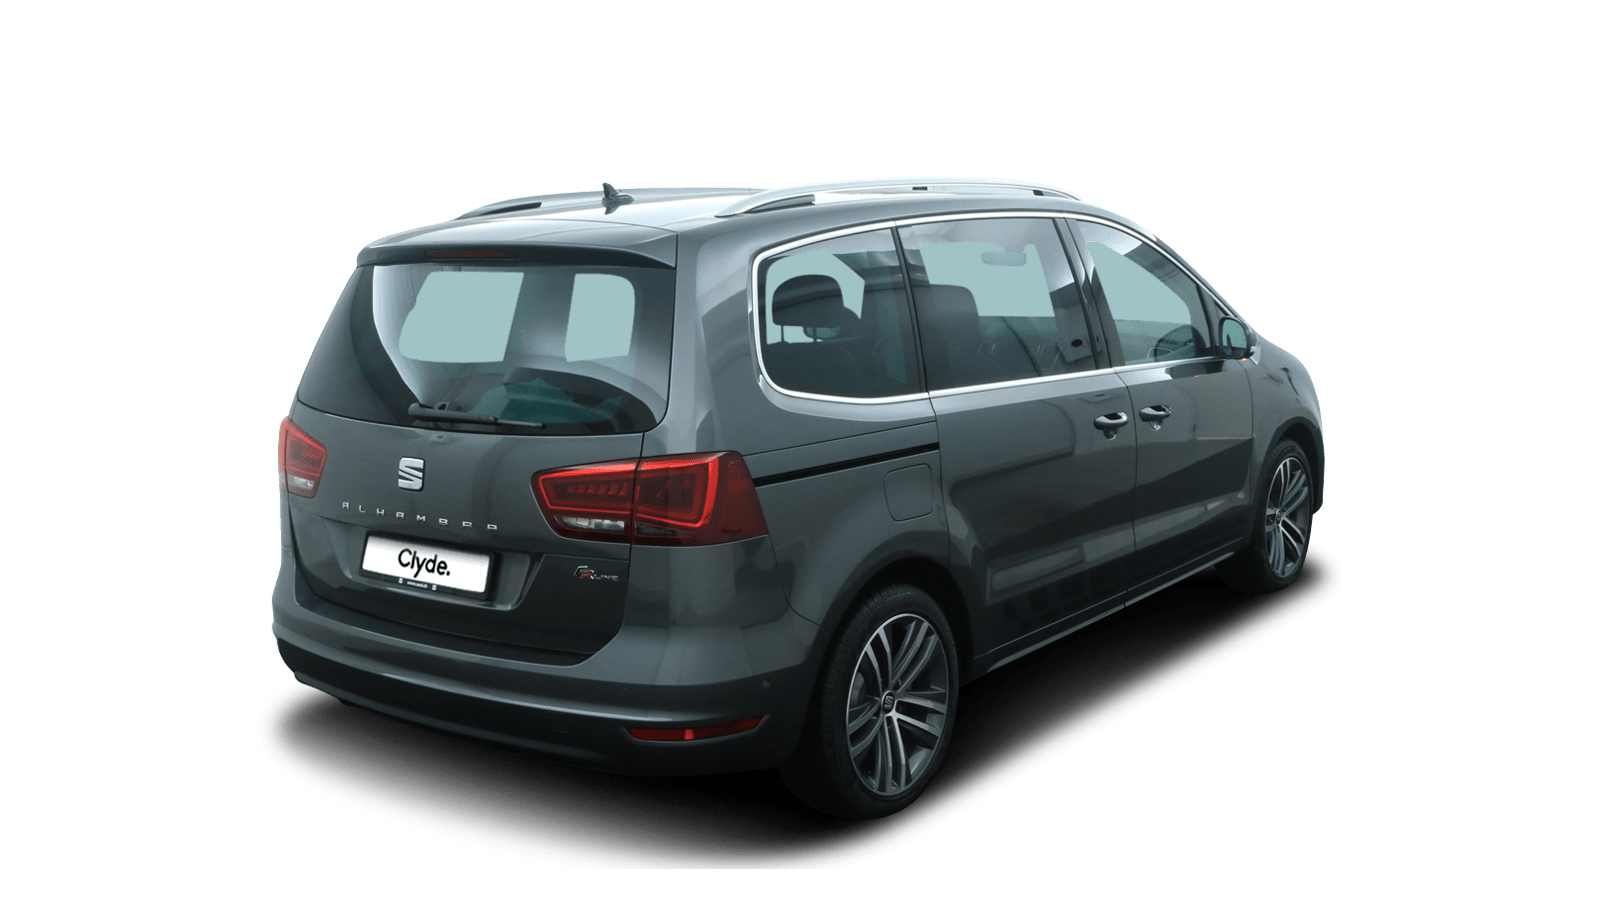 SEAT Alhambra Grey back - Clyde car subscription